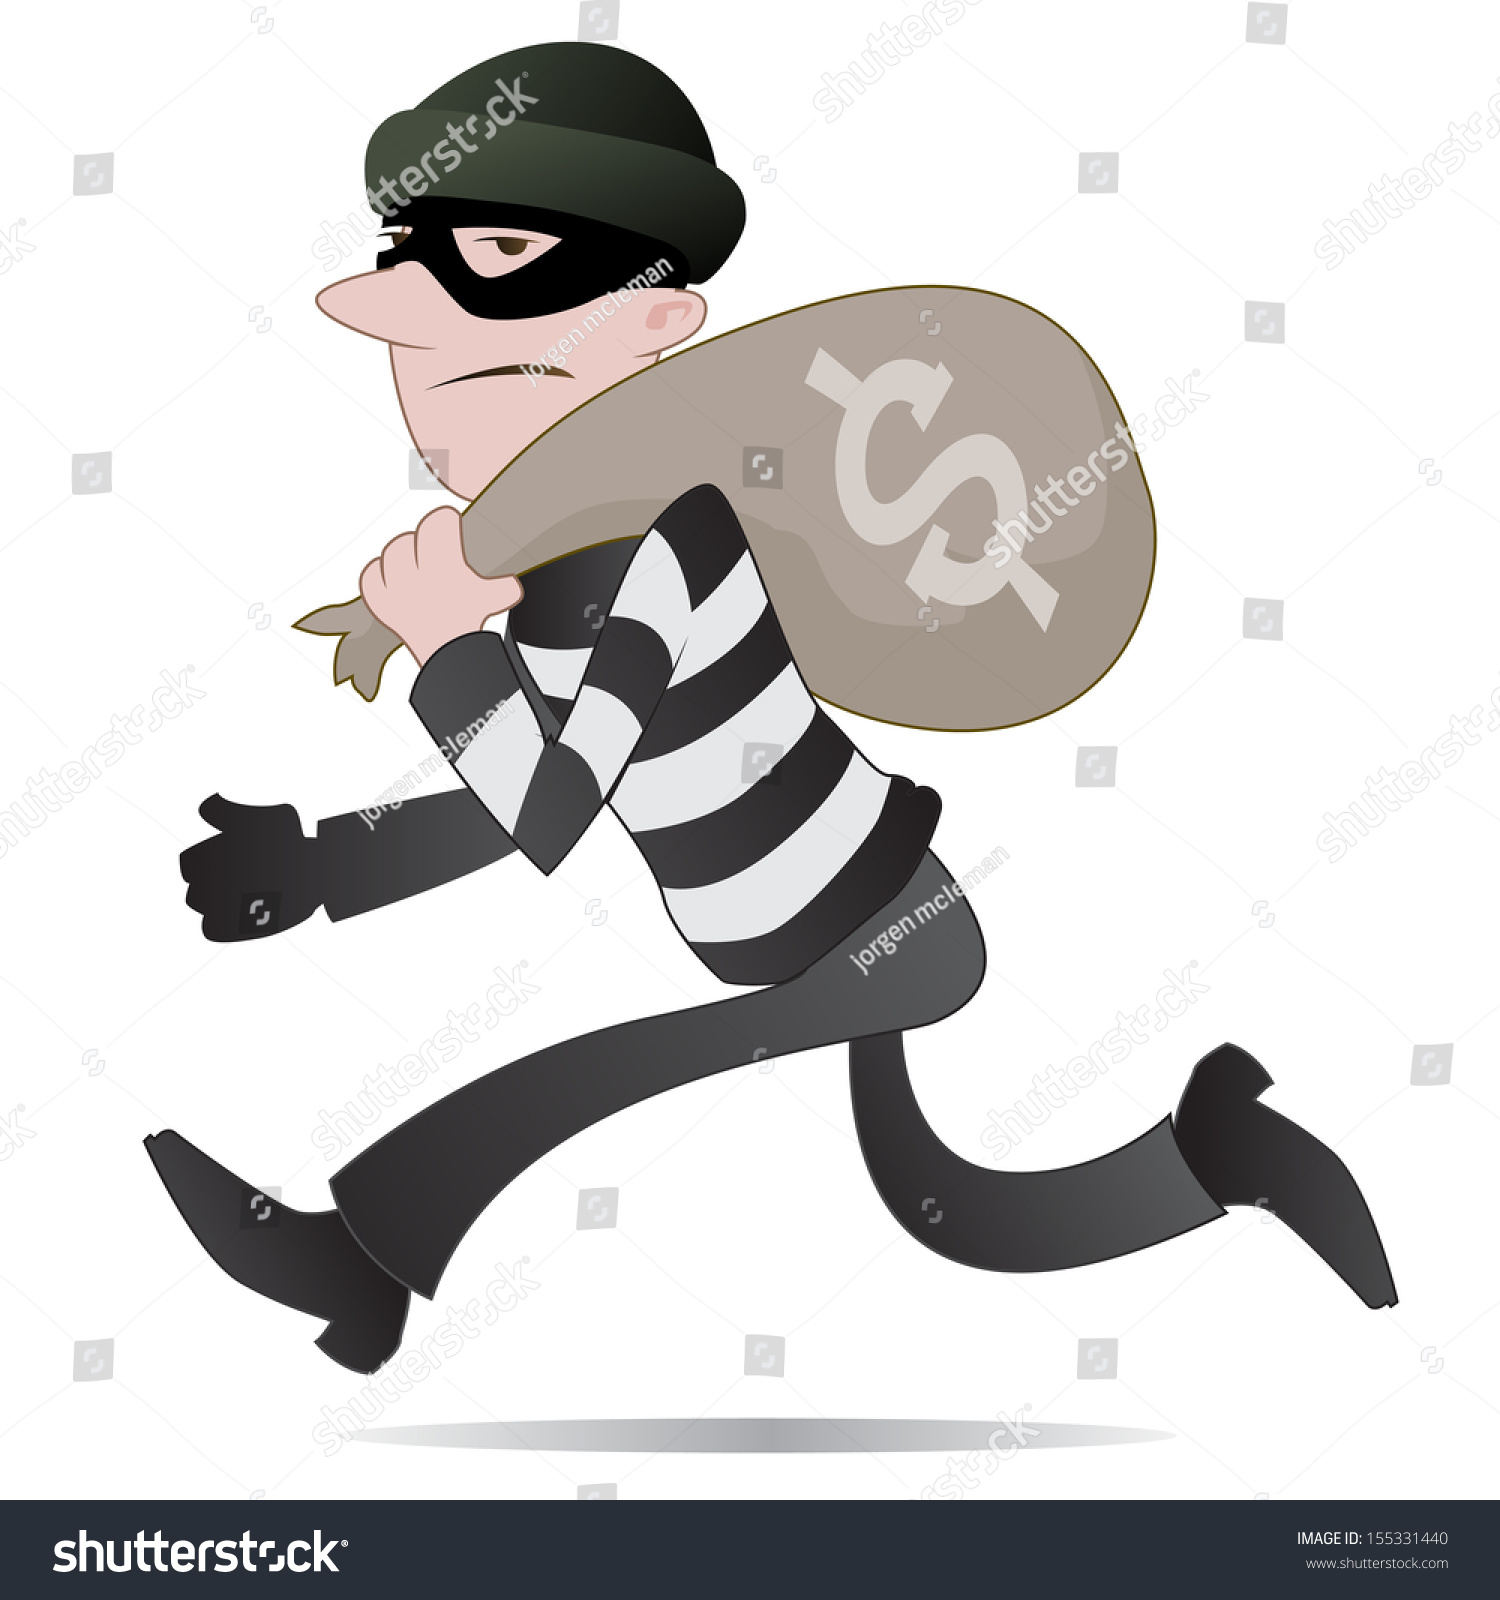 Thief. illustration of a burglar running away with his swag and ill-gotten  gains - Burglar PNG Swag